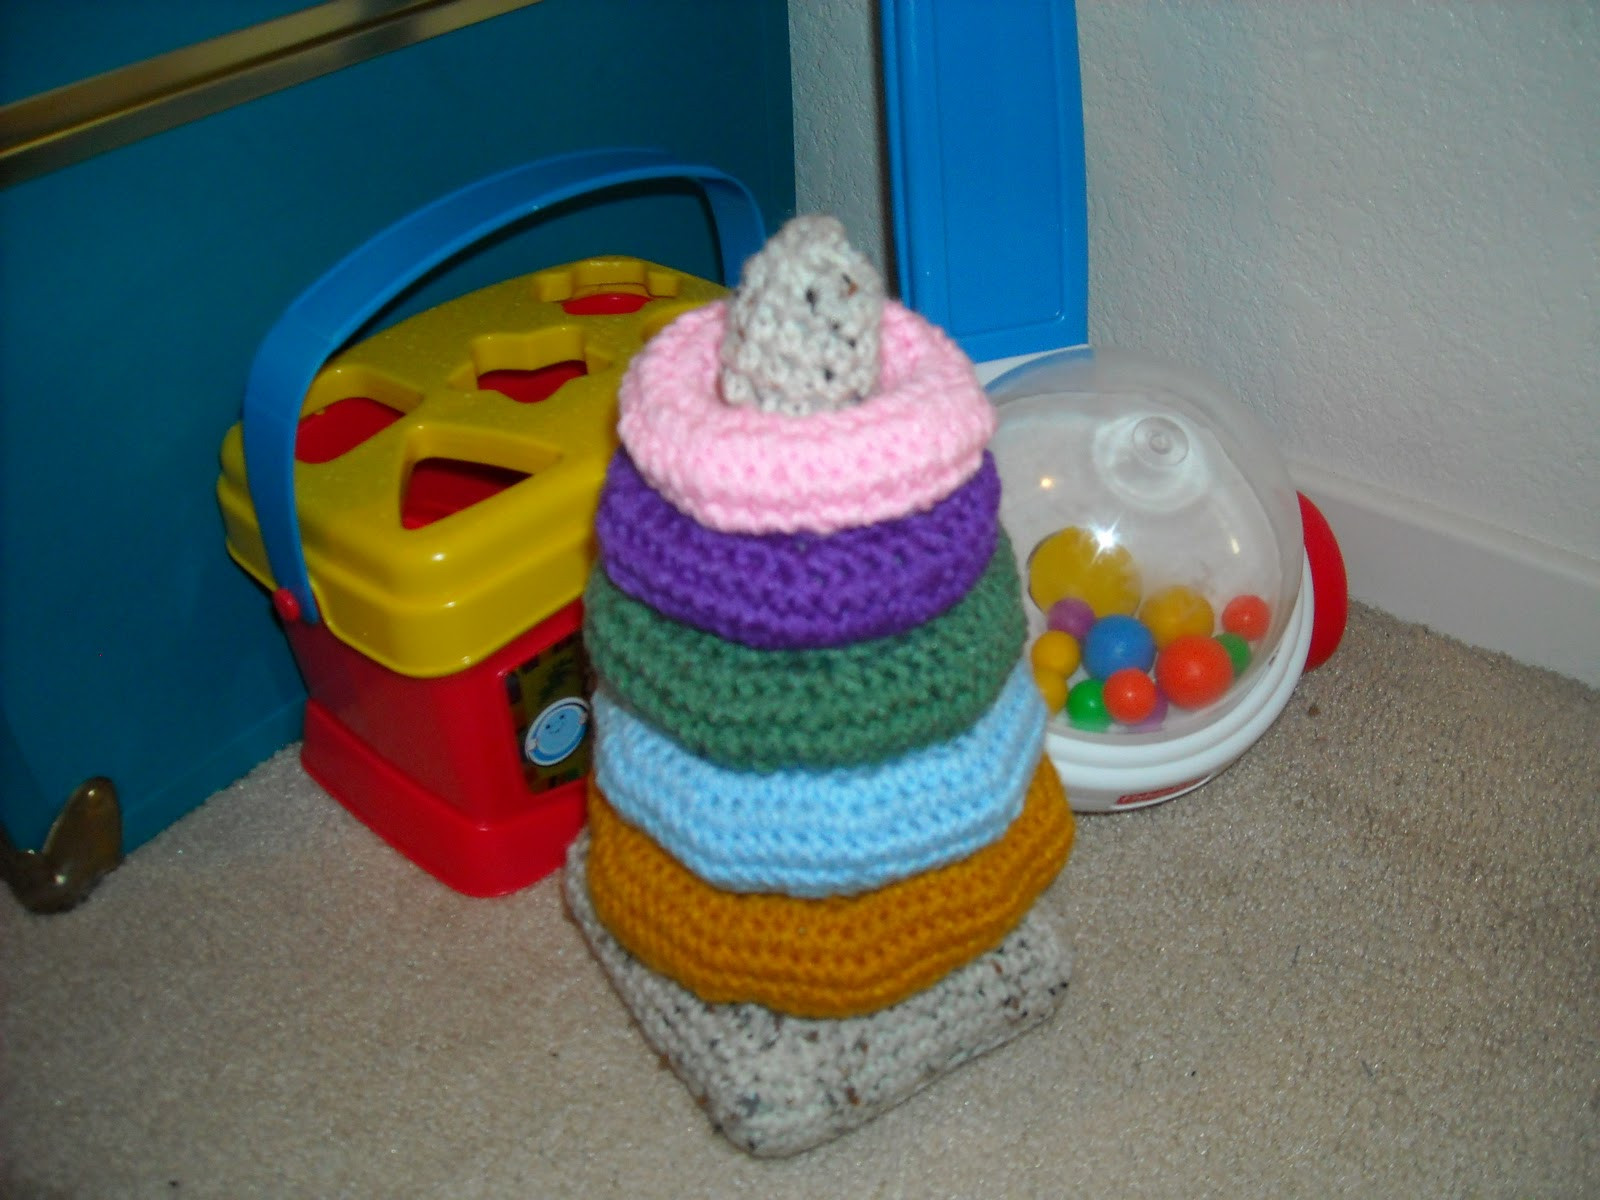 Crochet Baby toys Luxury A Crafty Cook Crochet Baby Ring Stacking toy – Part 1 Of Great 46 Photos Crochet Baby toys